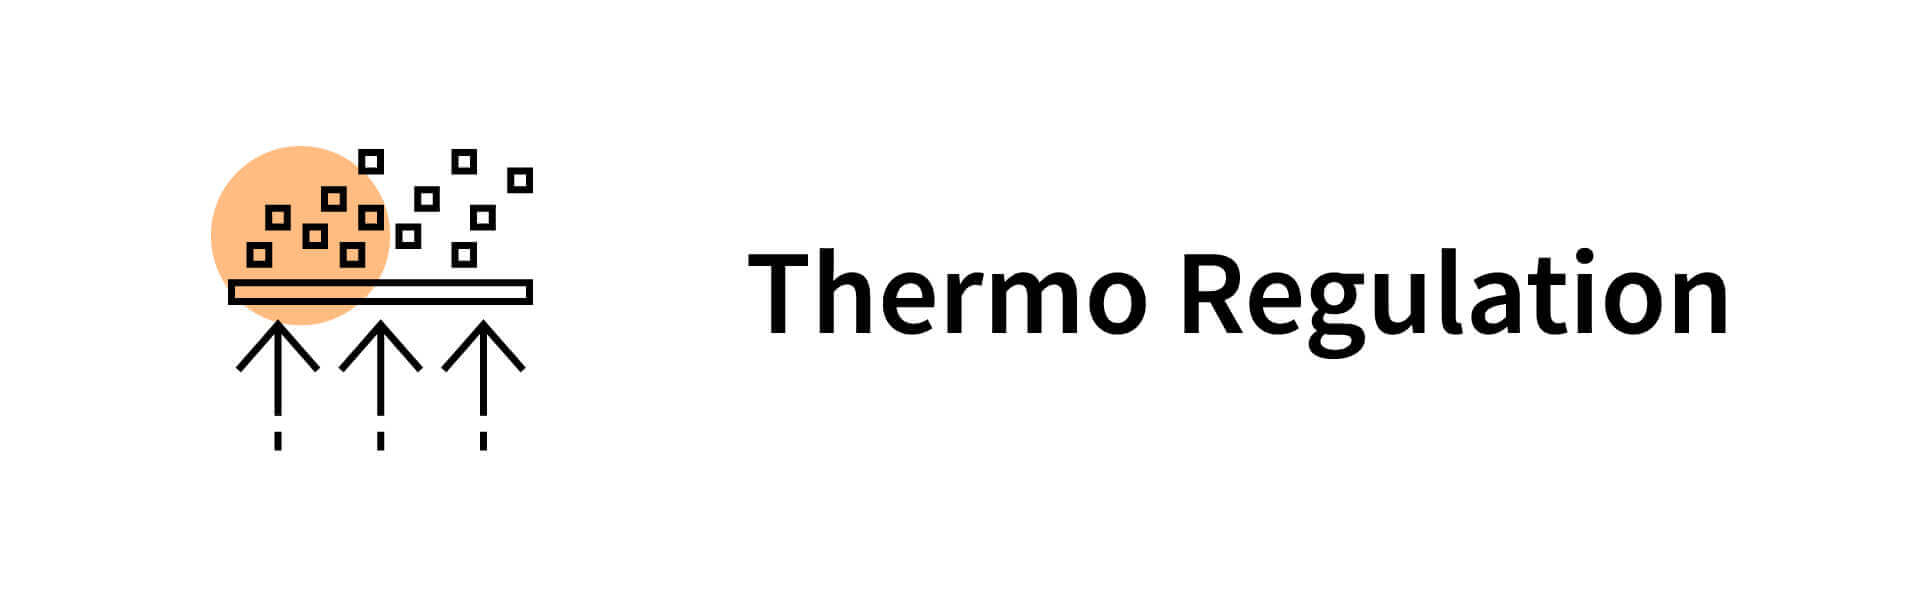 thermo-regulation